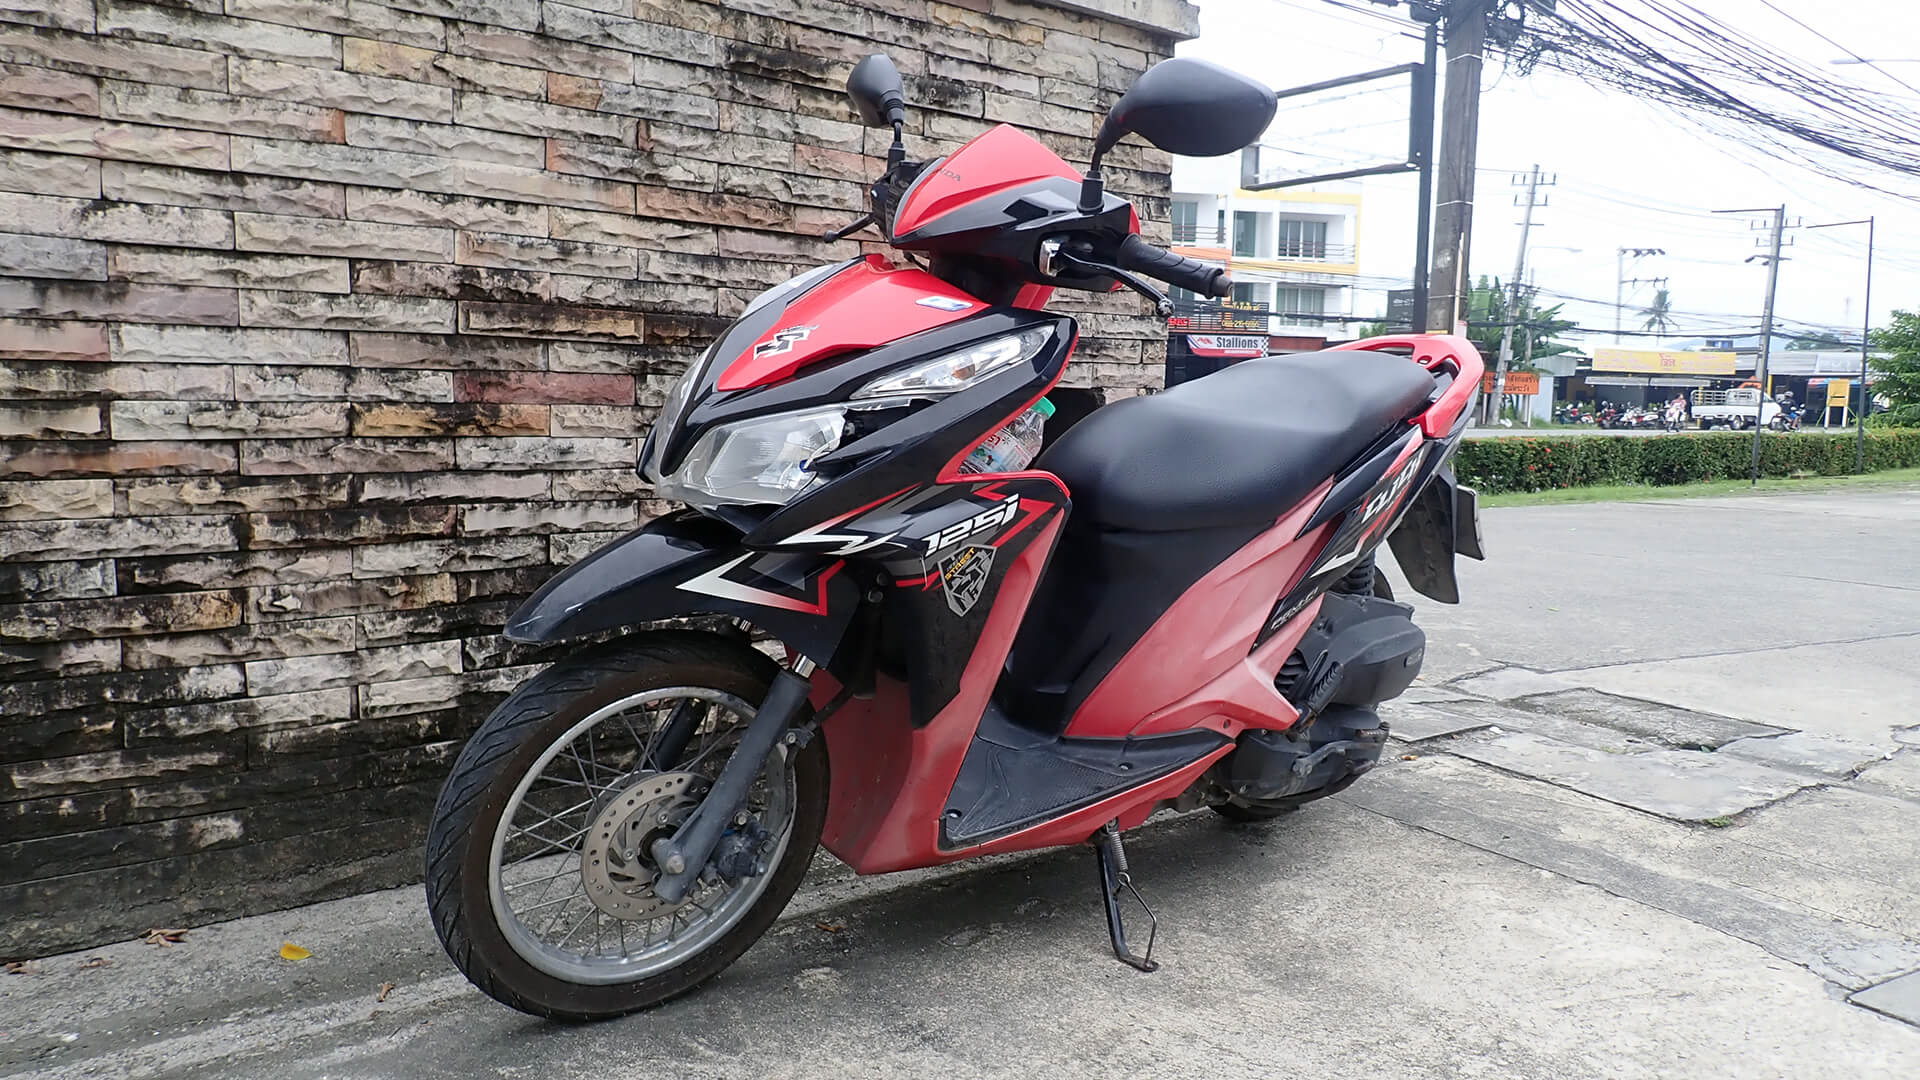 Hiring A Scooter In Phuket – Risk And Reward